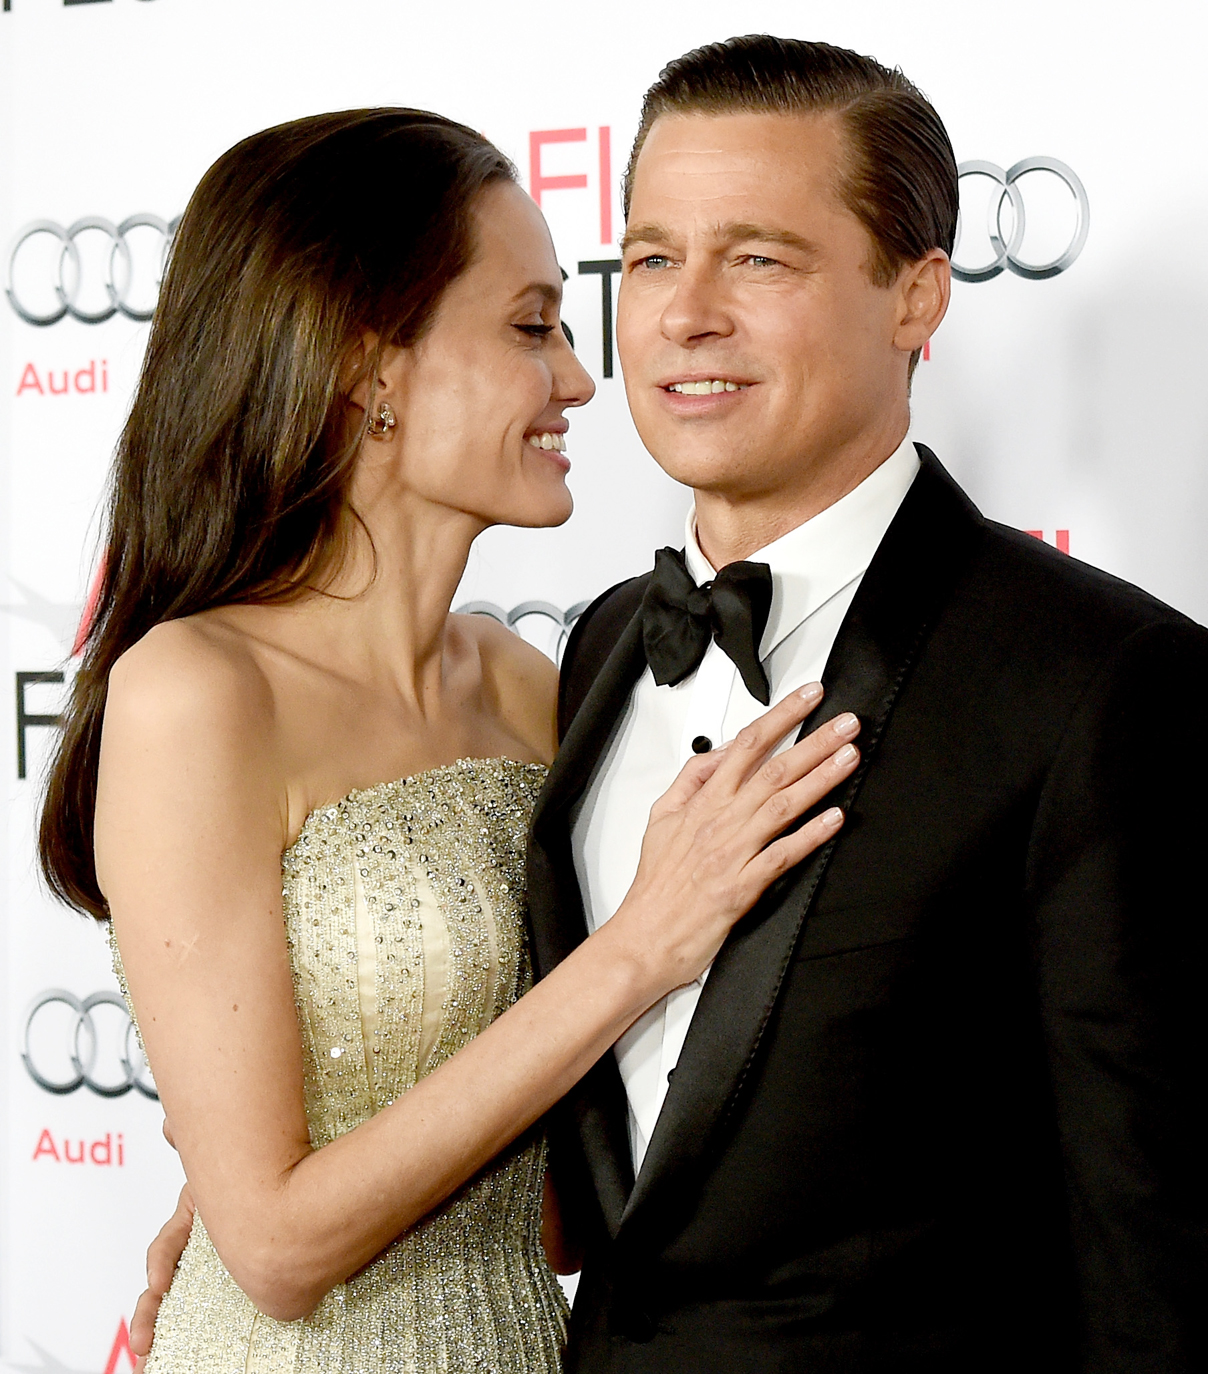 21 of Birthday Boy Brad Pitt and Angelina Jolie's Most Adorable Couple Moments